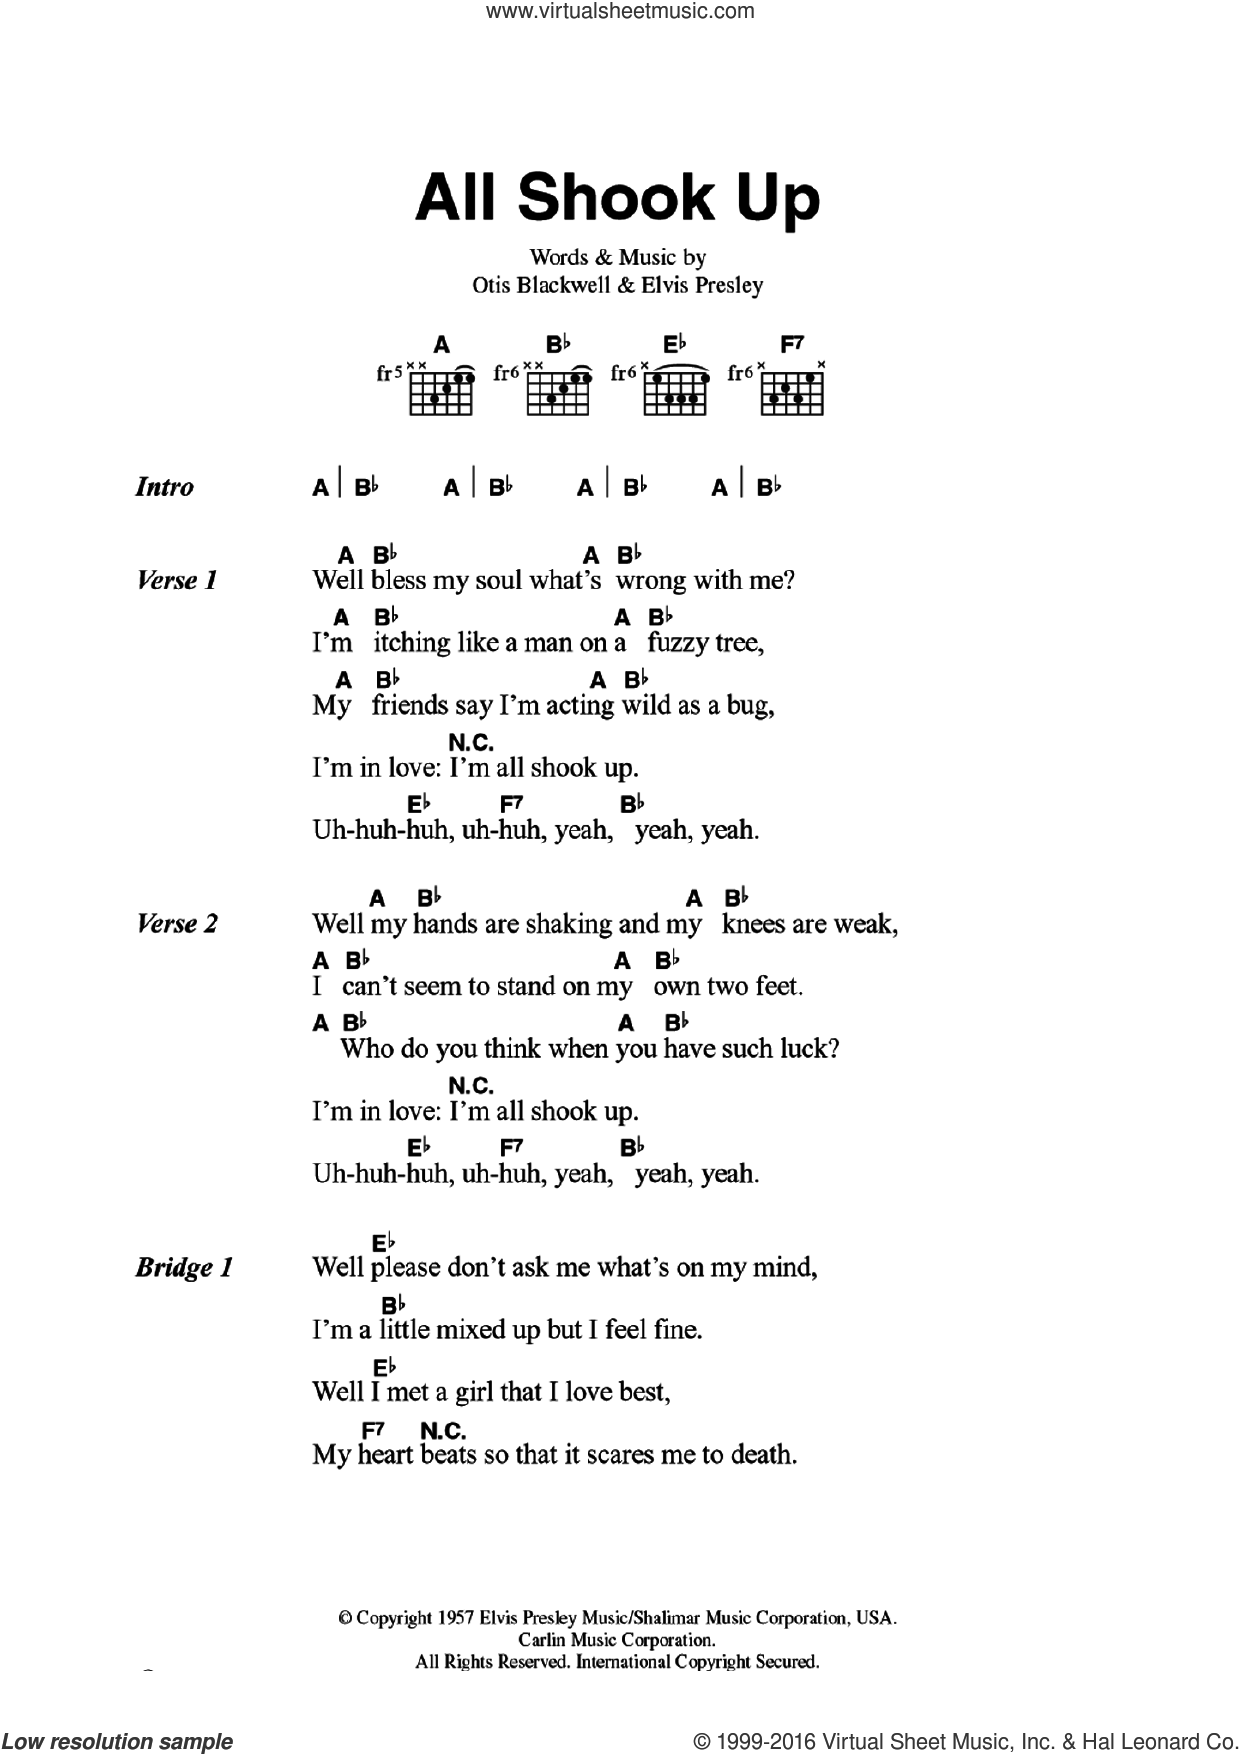 All Shook Up sheet music for guitar (chords) by Otis Blackwell